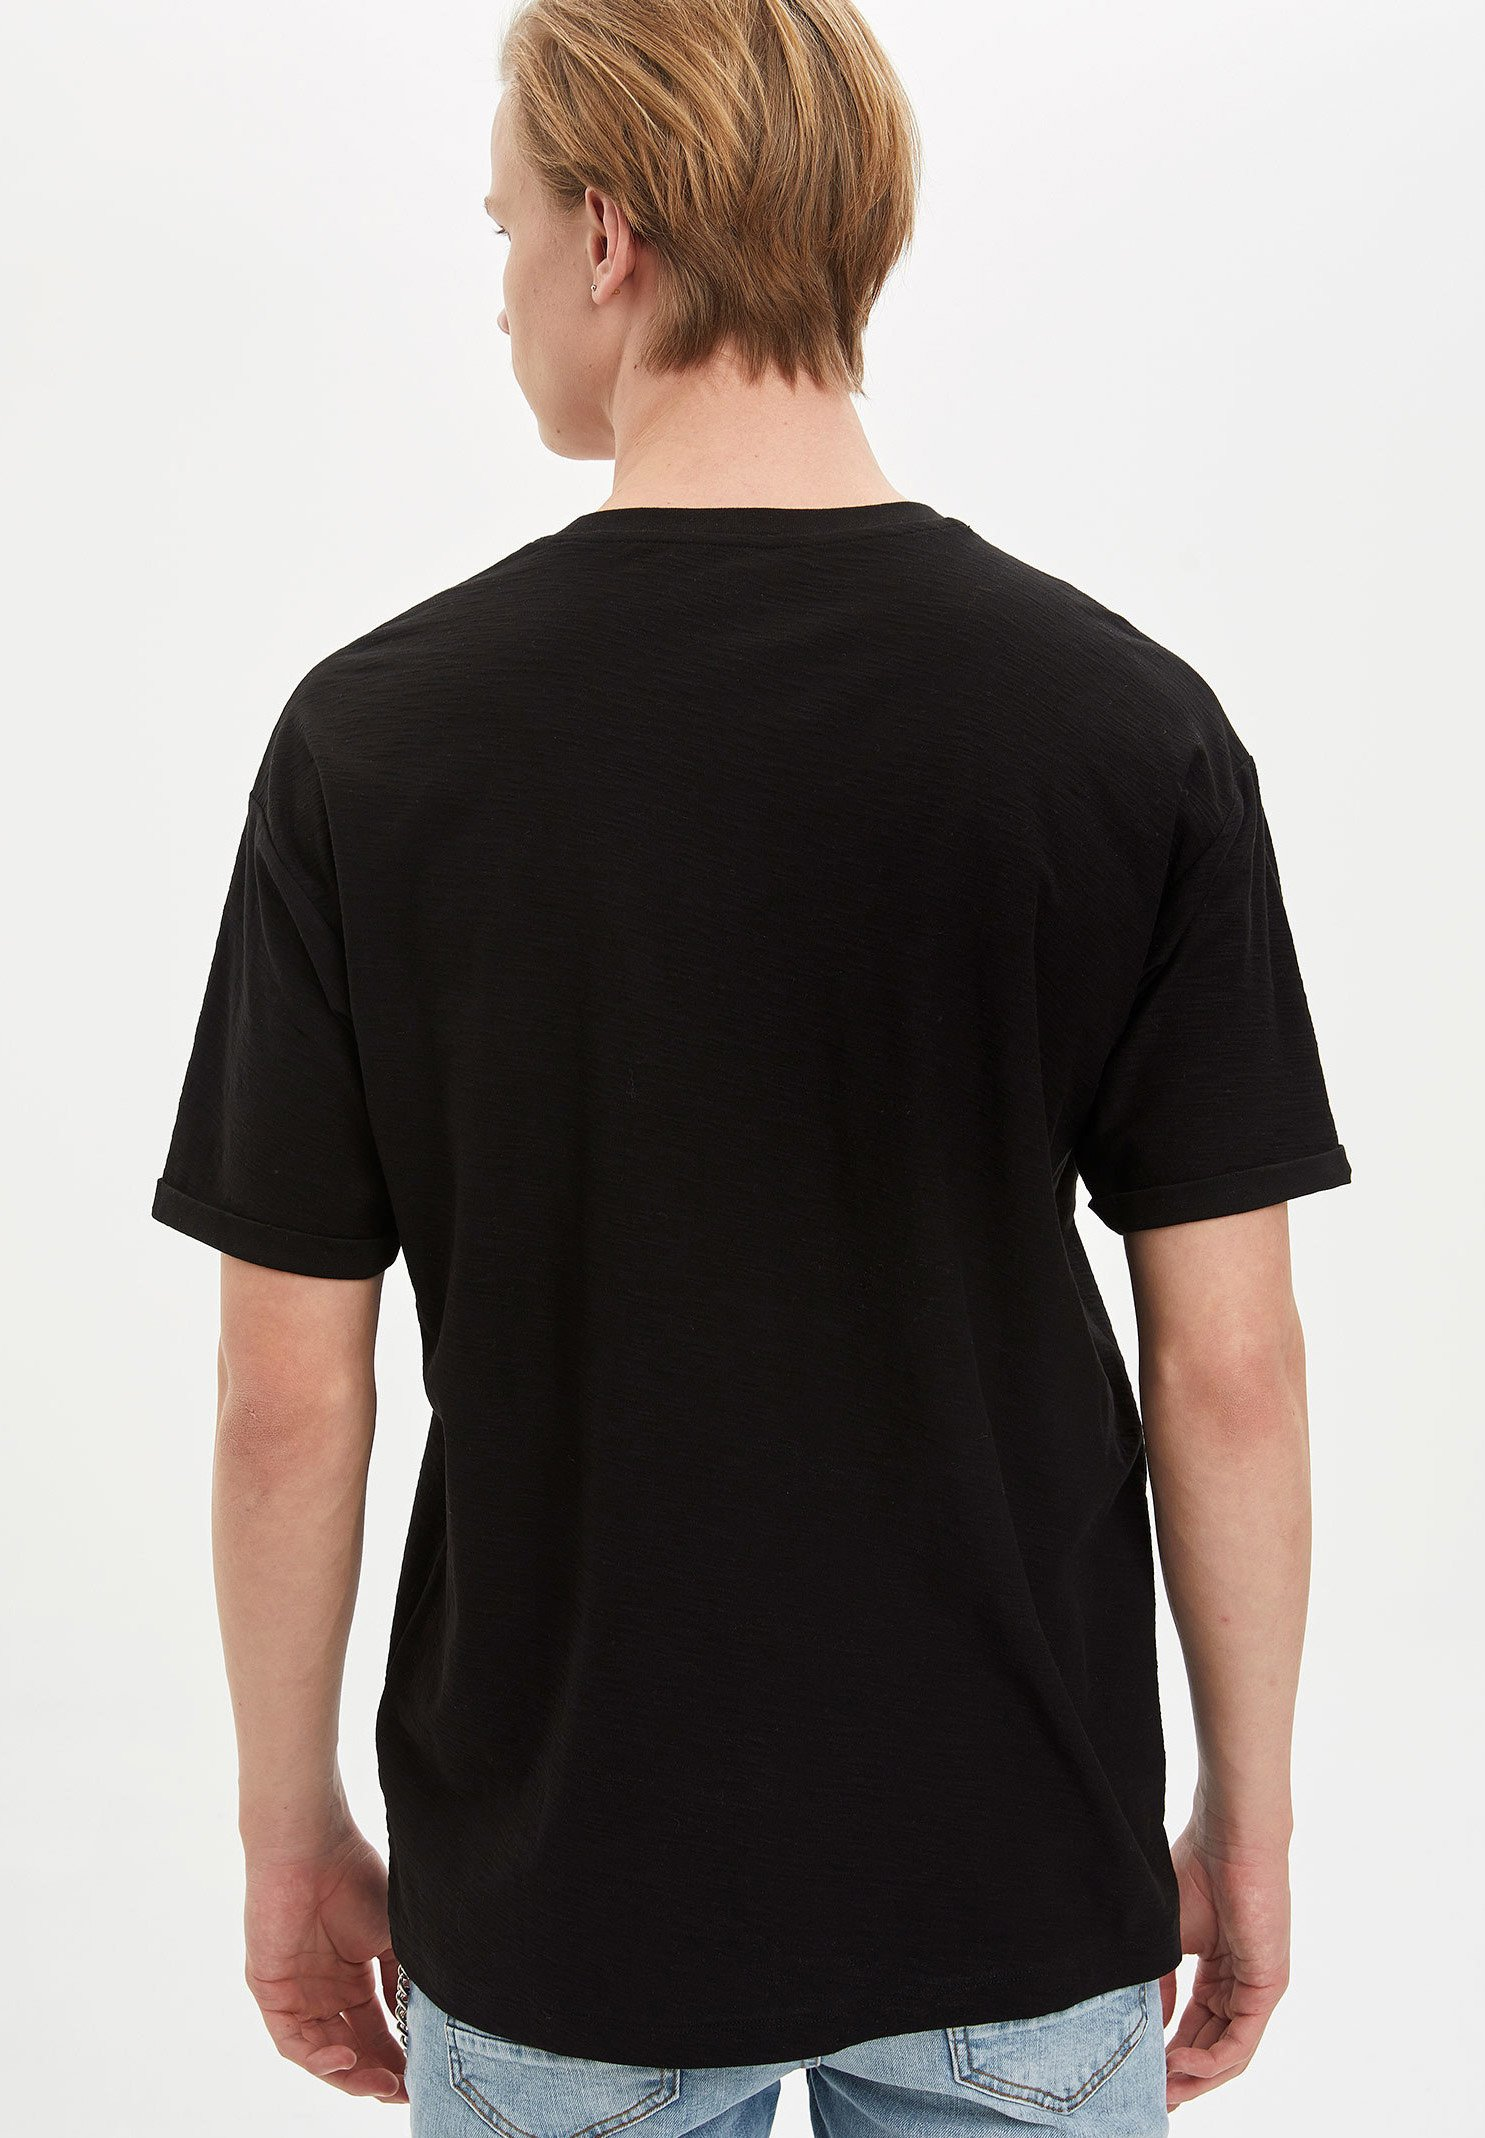 DeFacto Basic T-shirt - black a2u0j